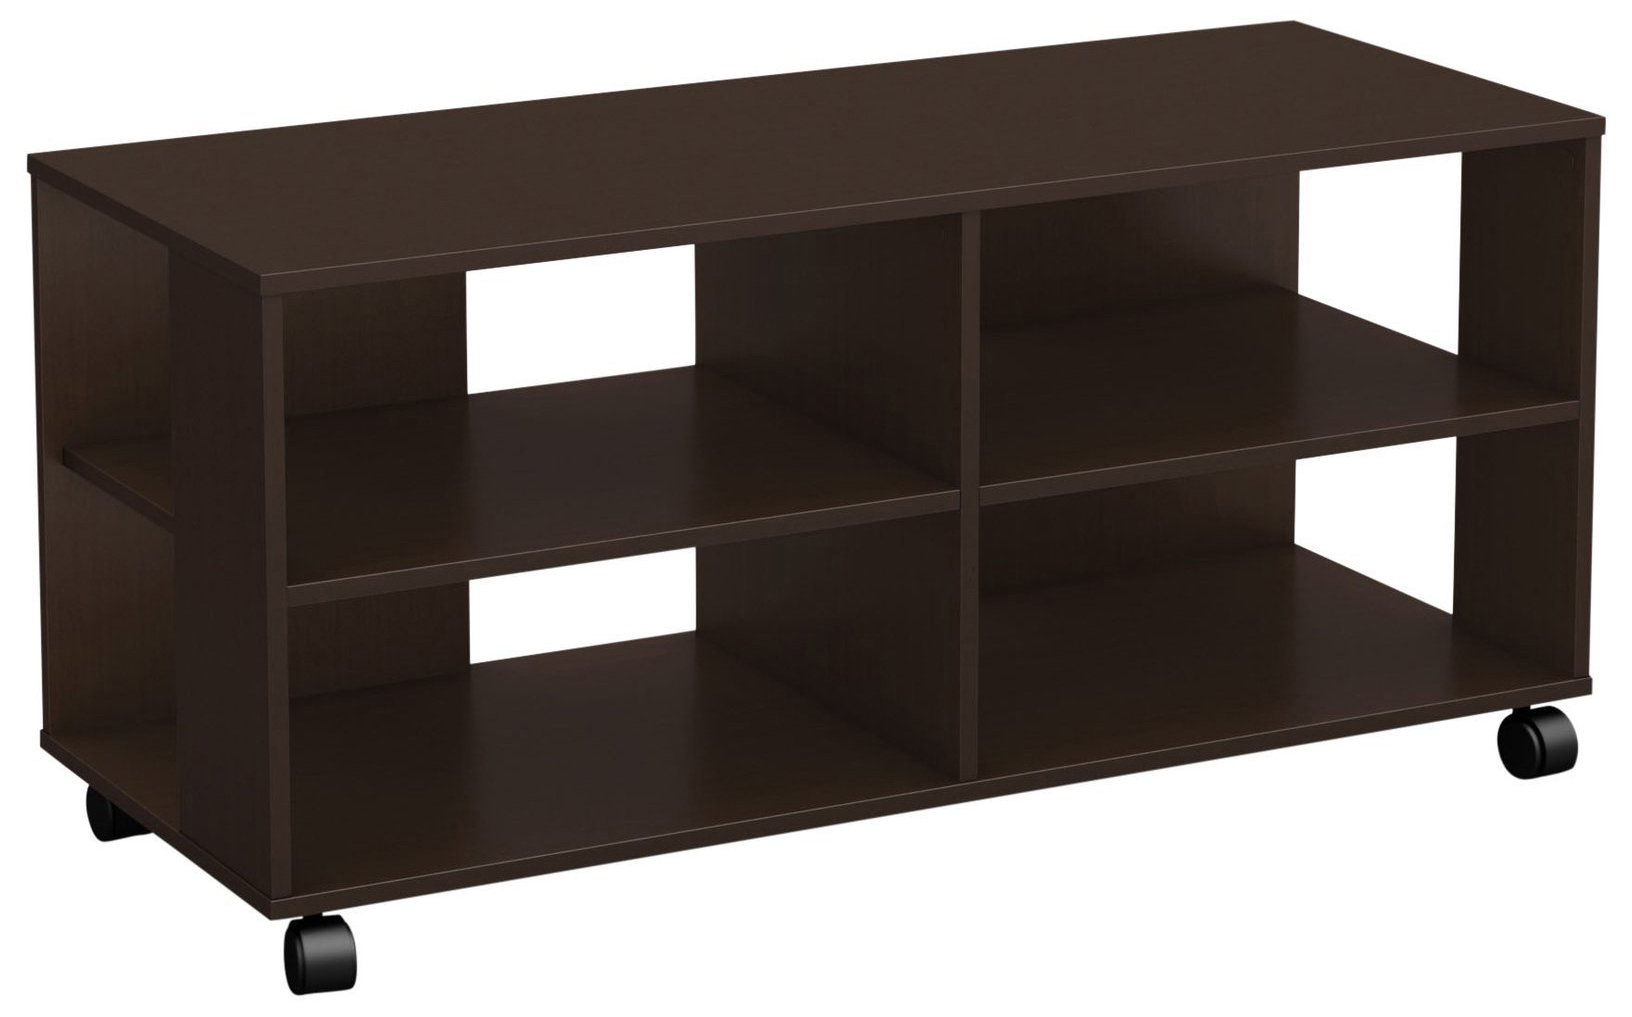 South Shore Jambory TV Stand Storage Unit on Casters - Fits TVs Up to 48'' Wide - Chocolate